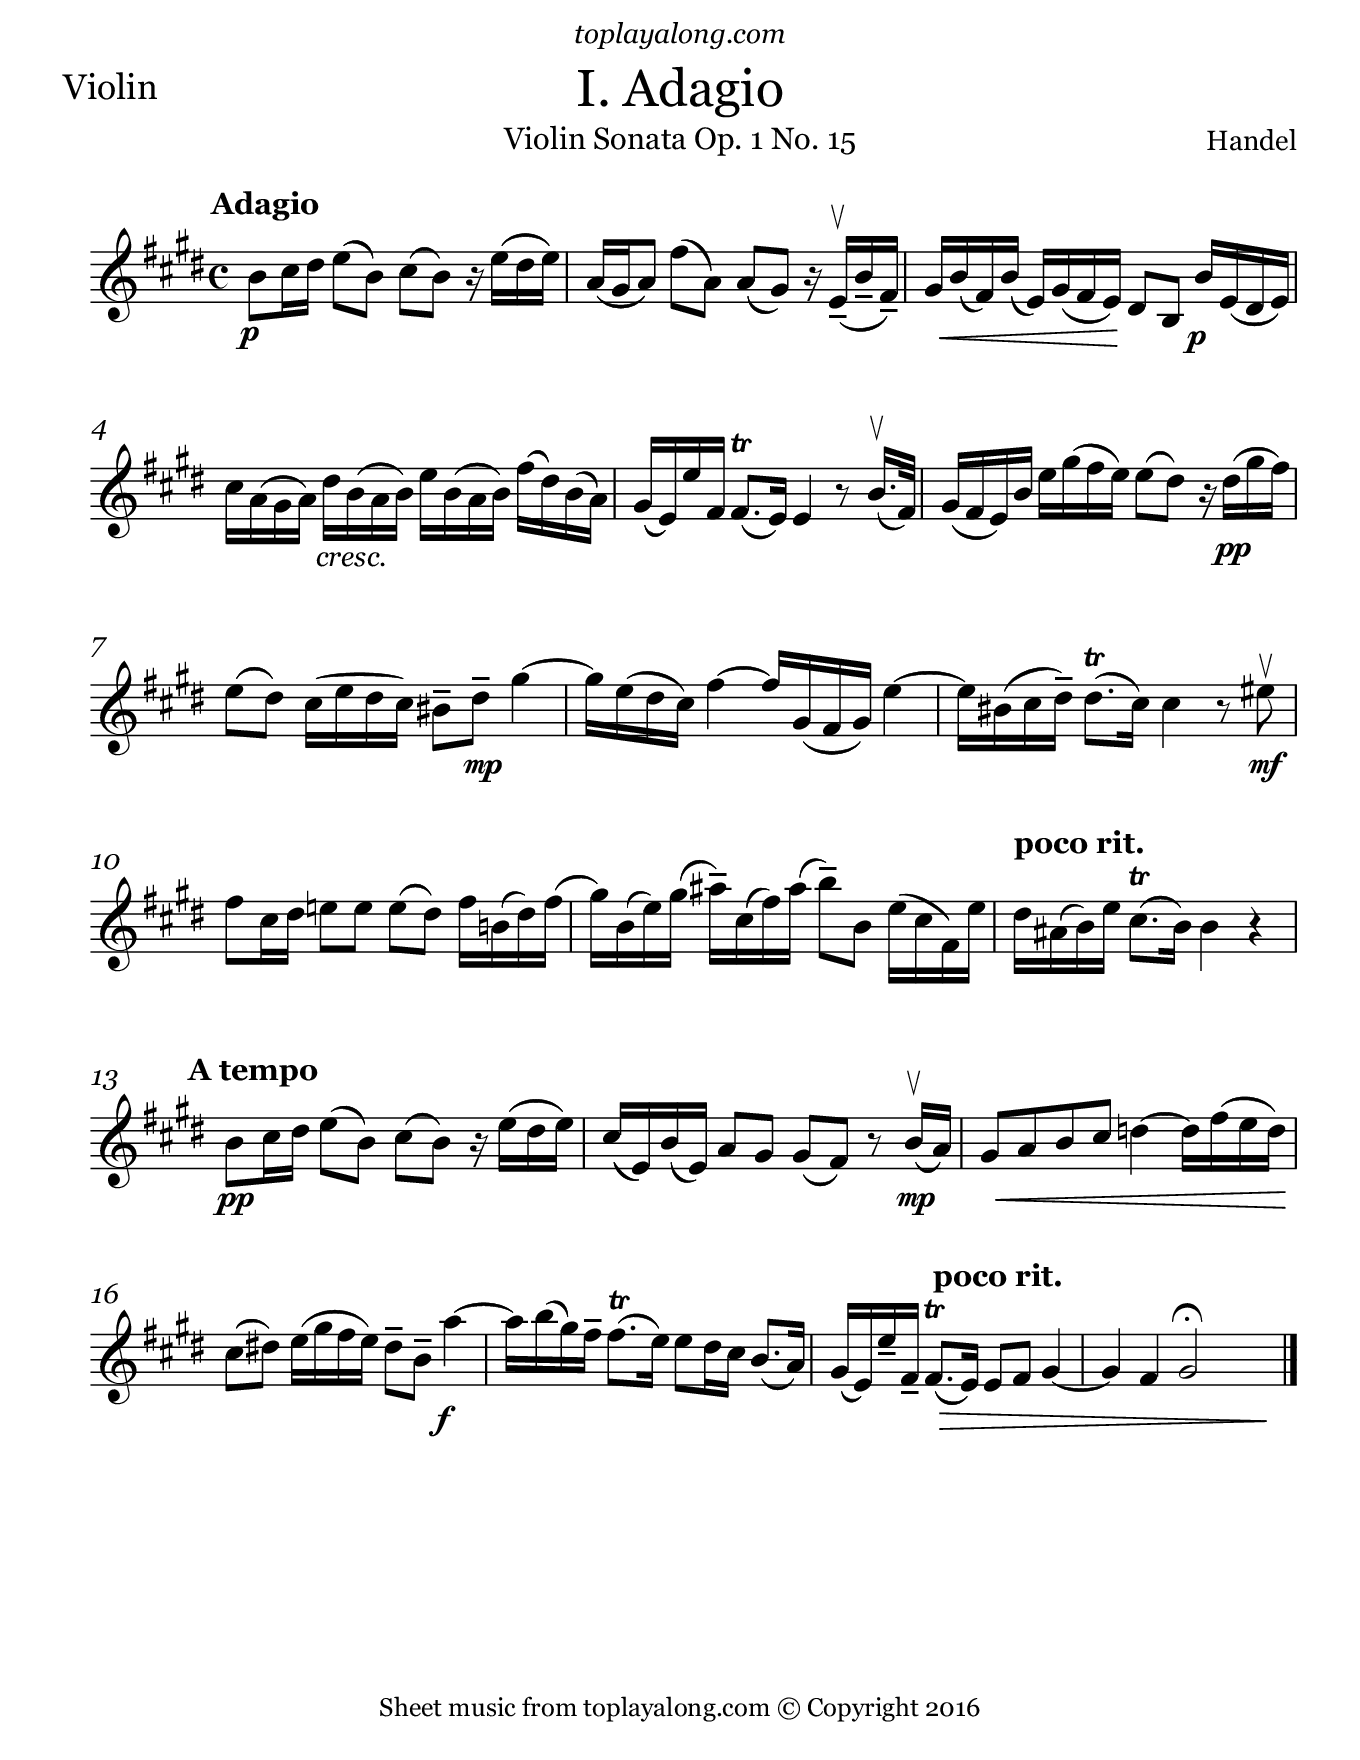 Violin Sonata Op. 1 No. 15 (I. Adagio) by Handel. Sheet music for Violin, page 1.